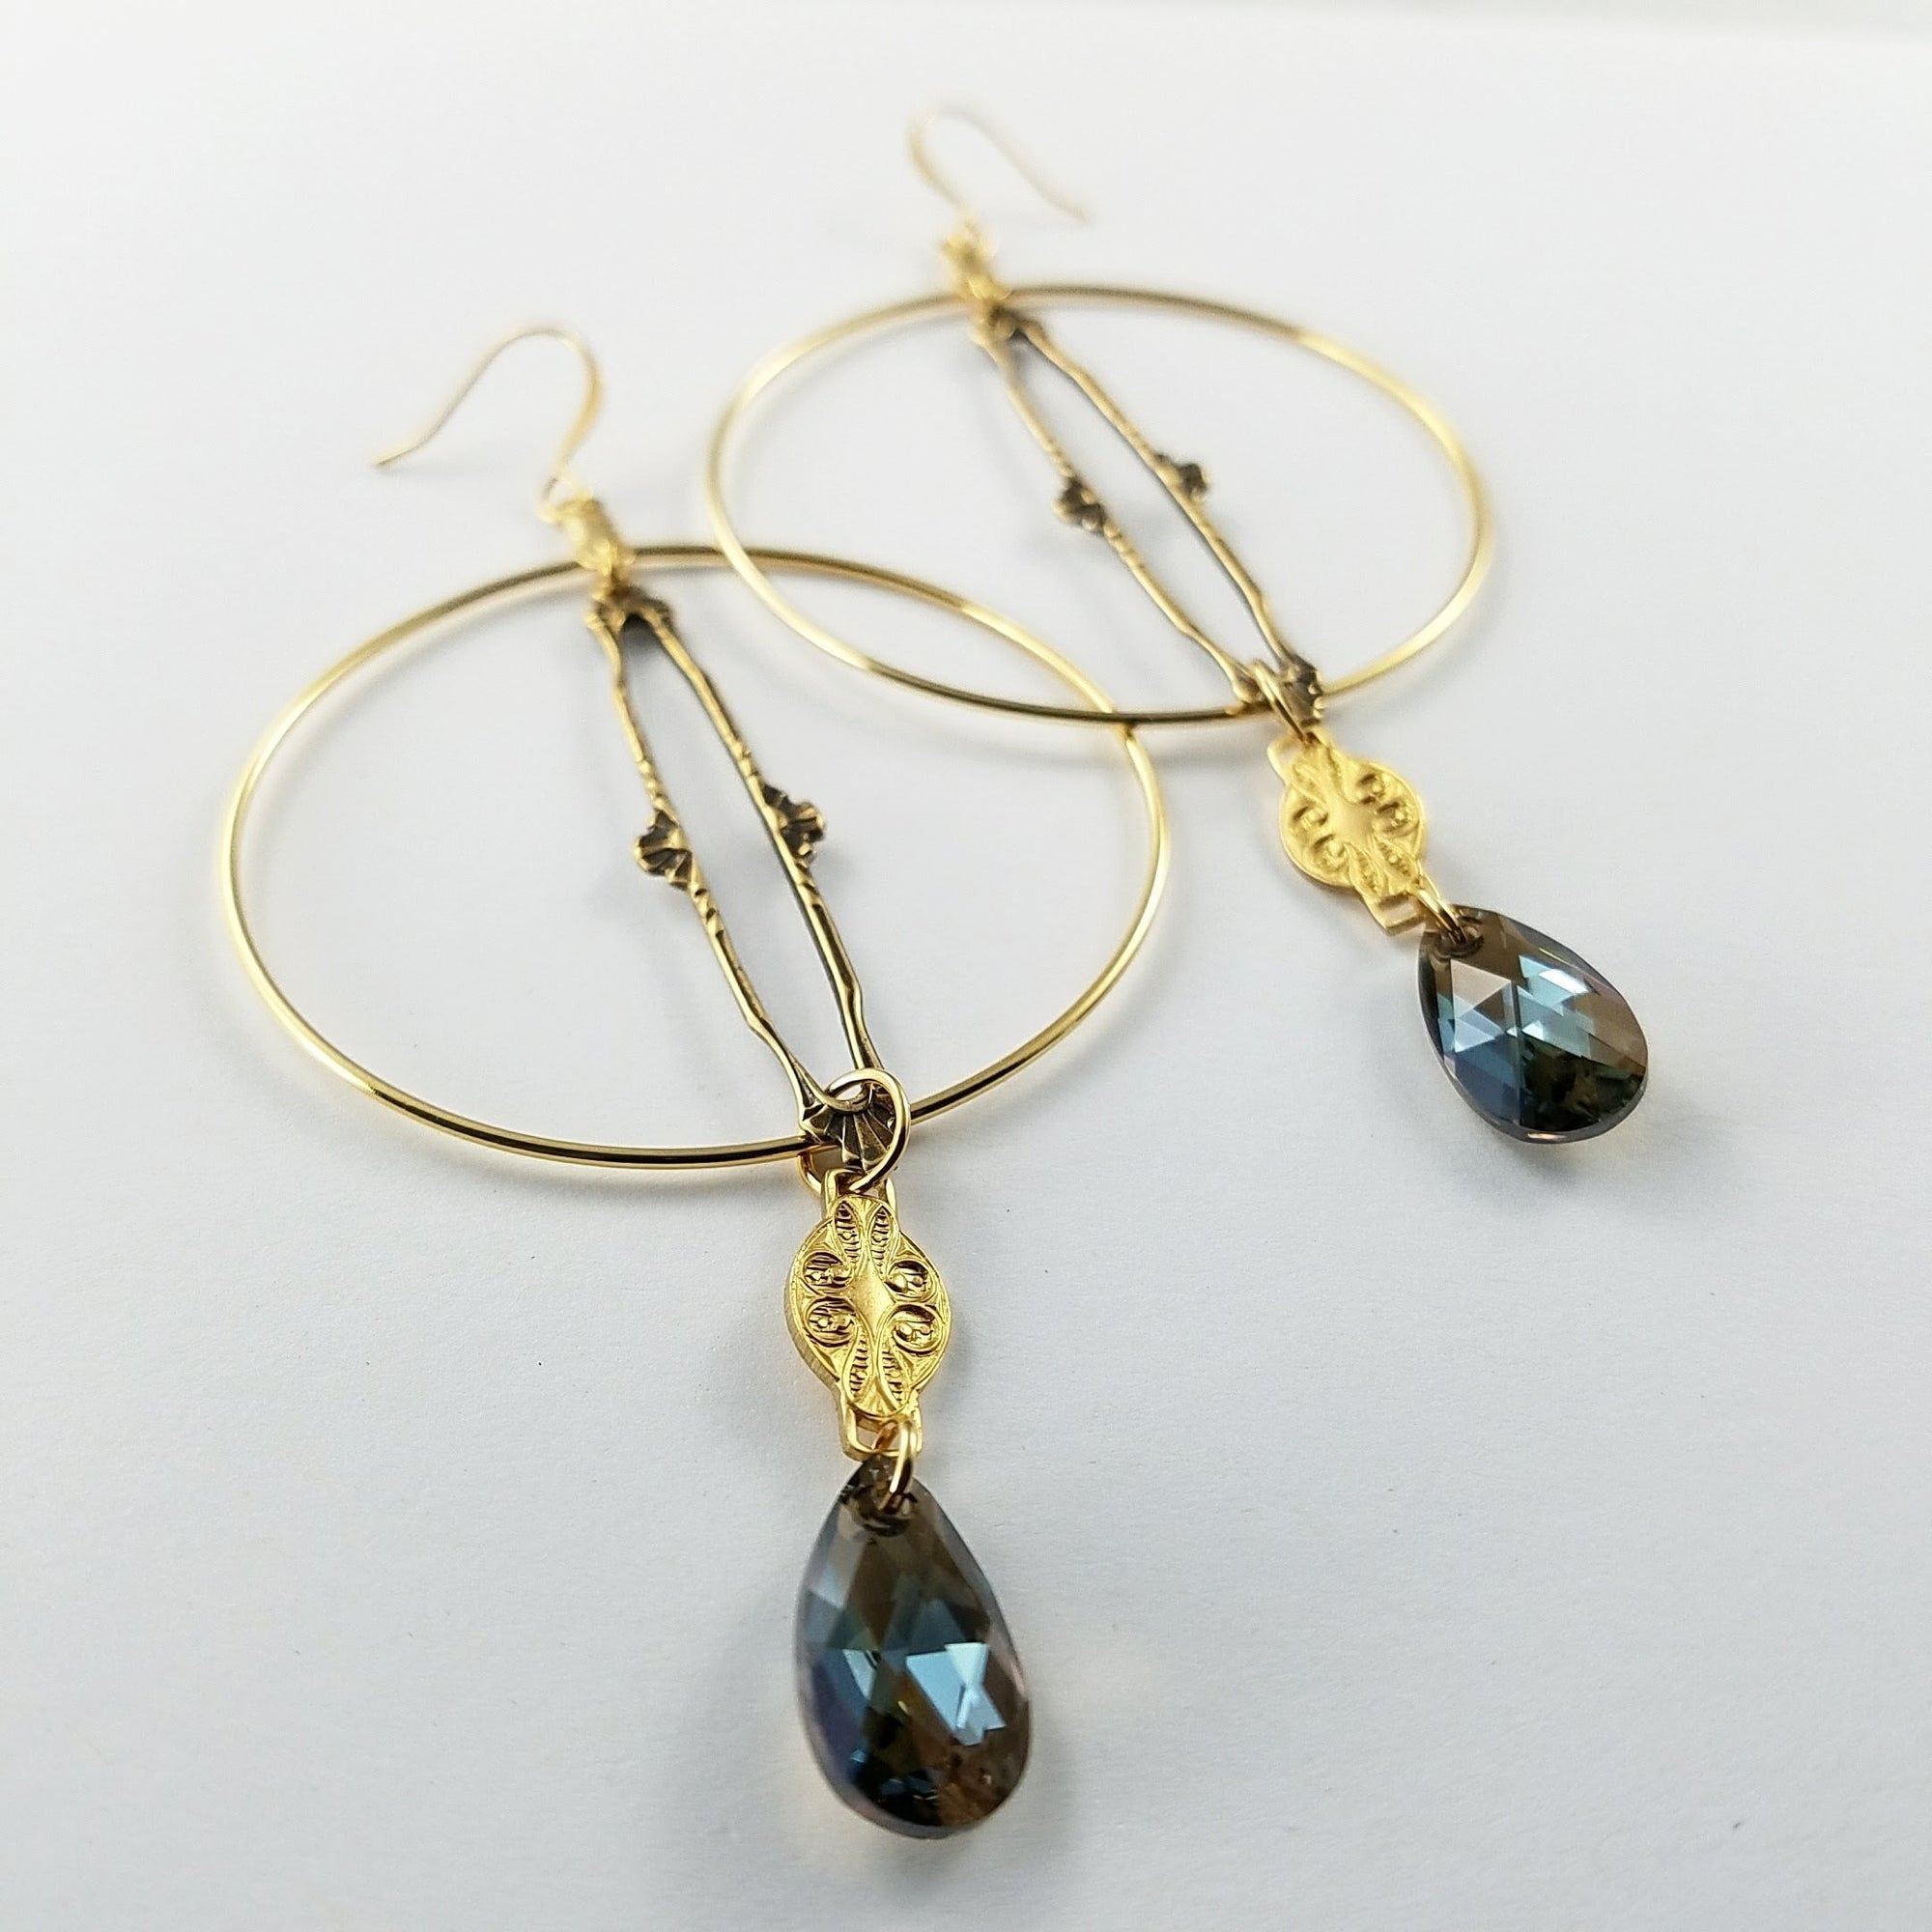 Verdier Jewelry Vintage Ivy Pendant Hoop Earrings